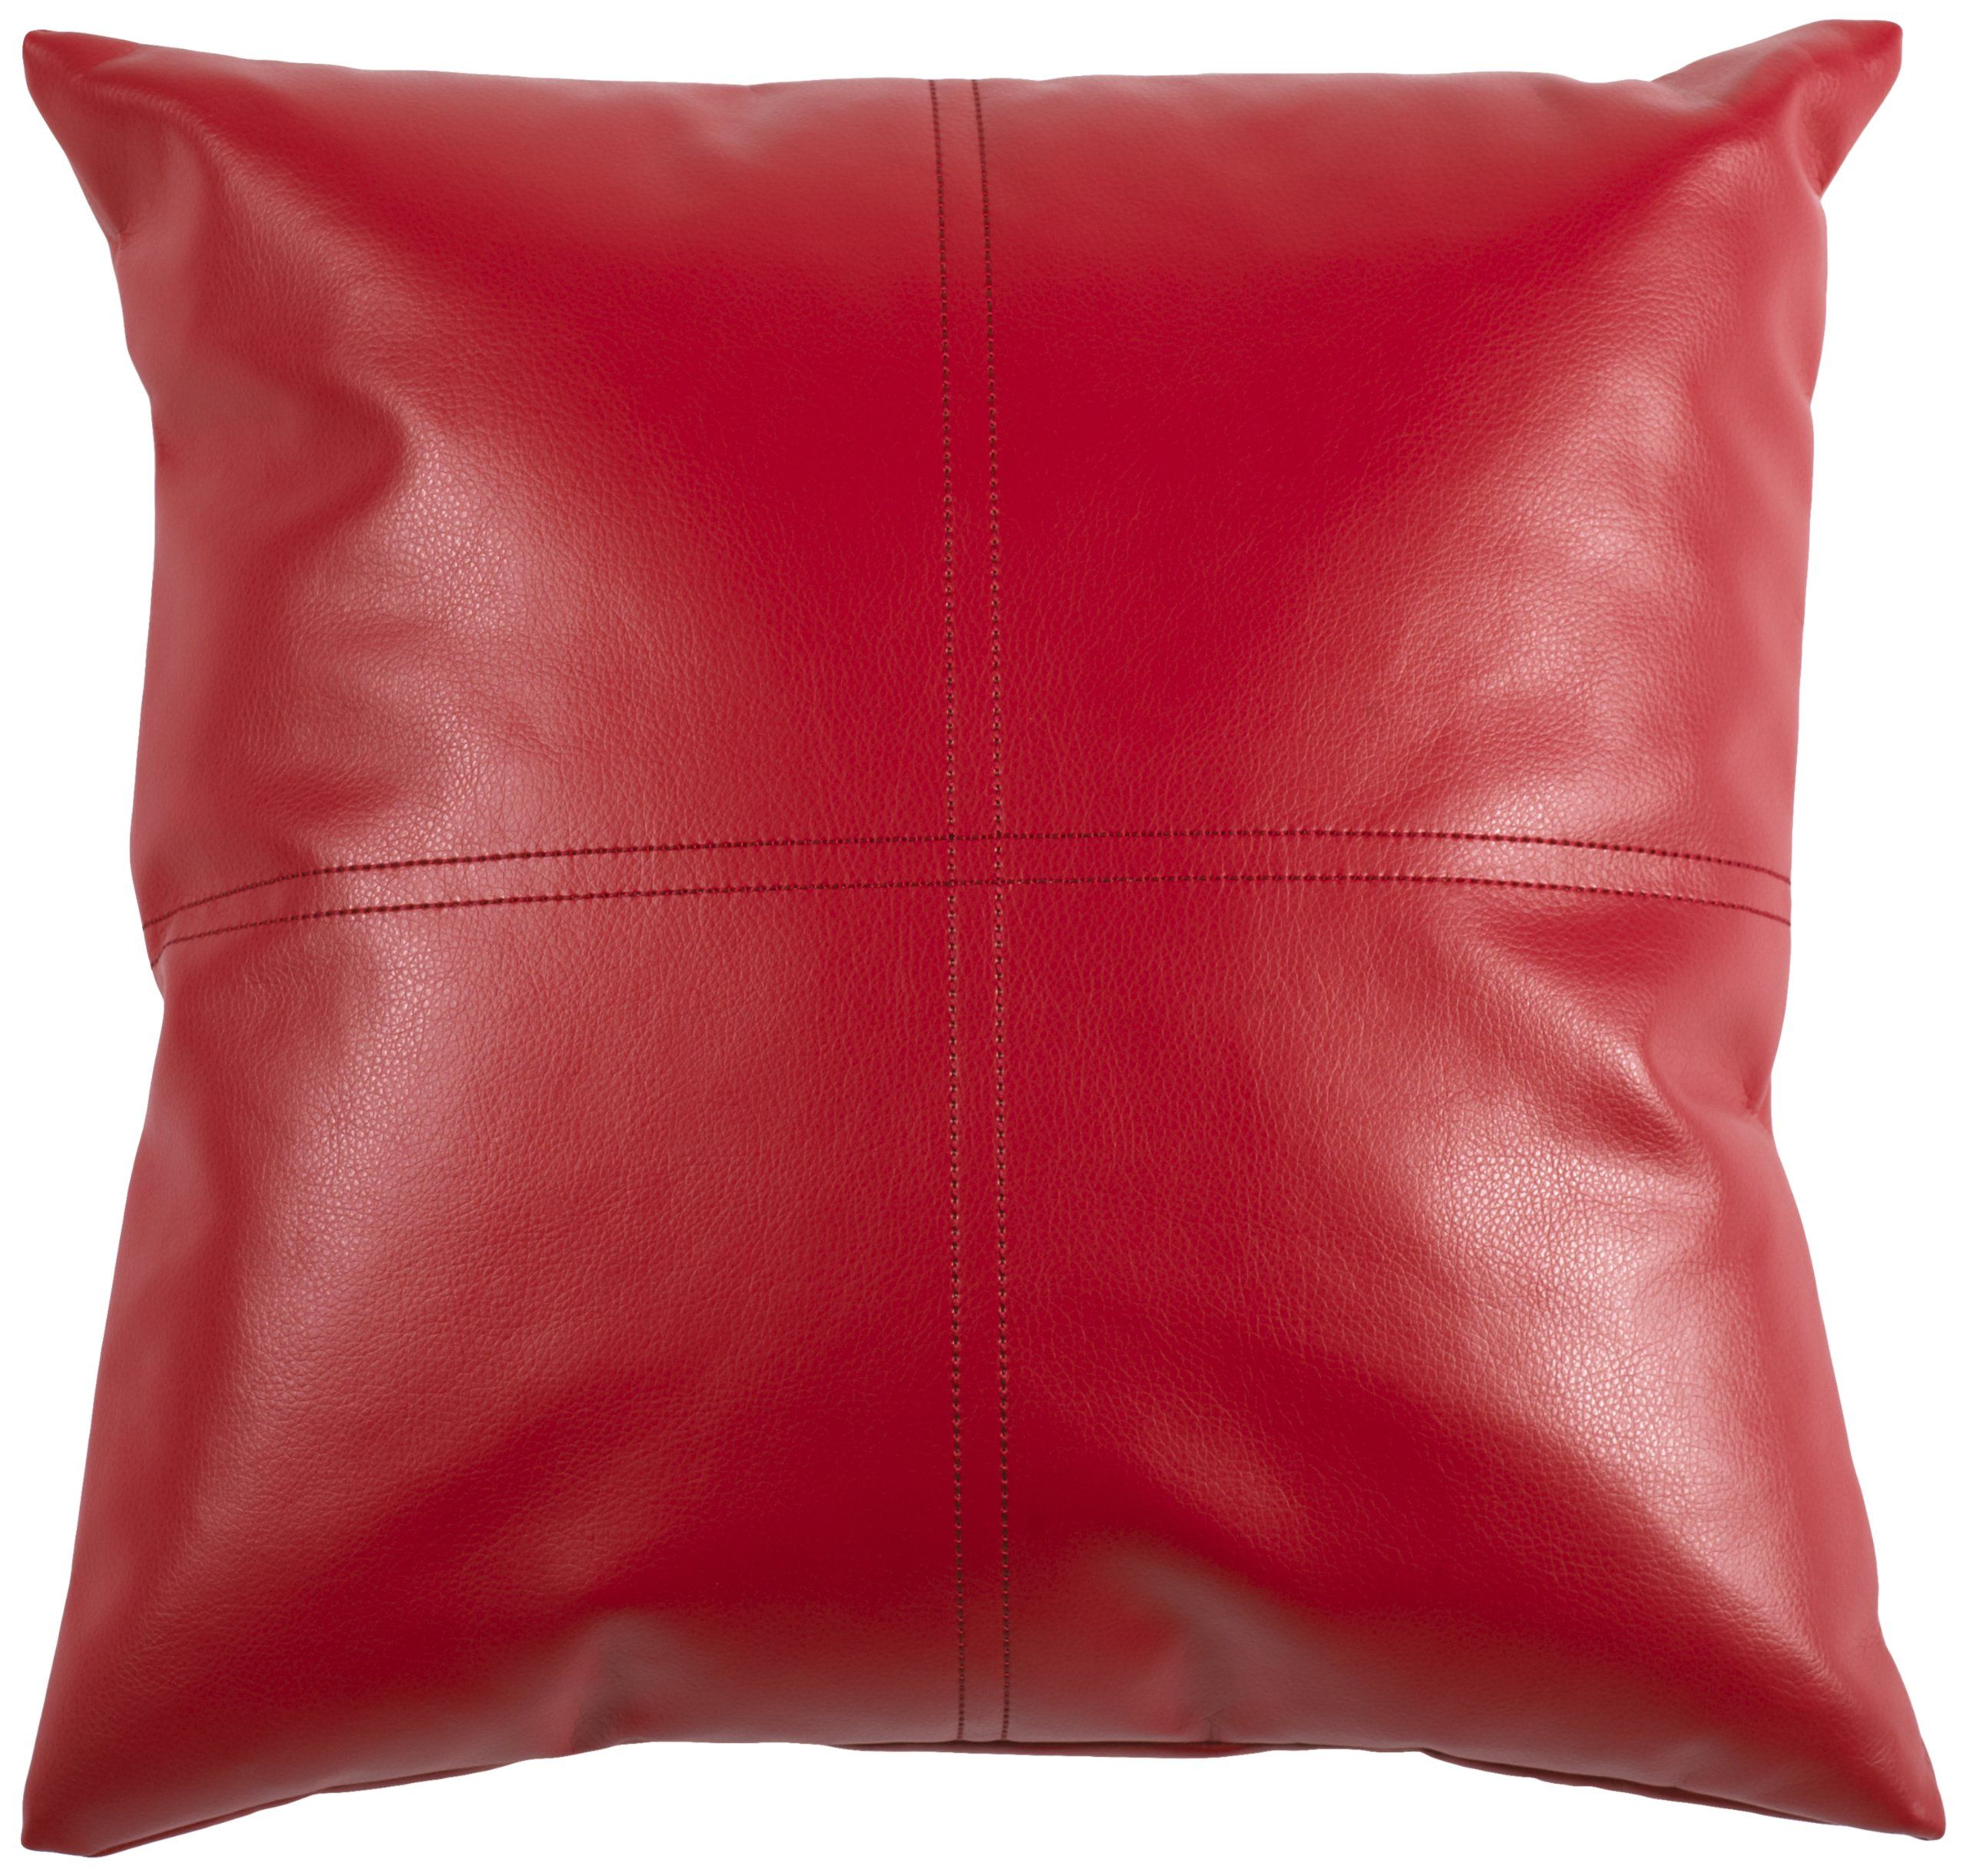 Urban Loft by Westex Fun Leather Cushion